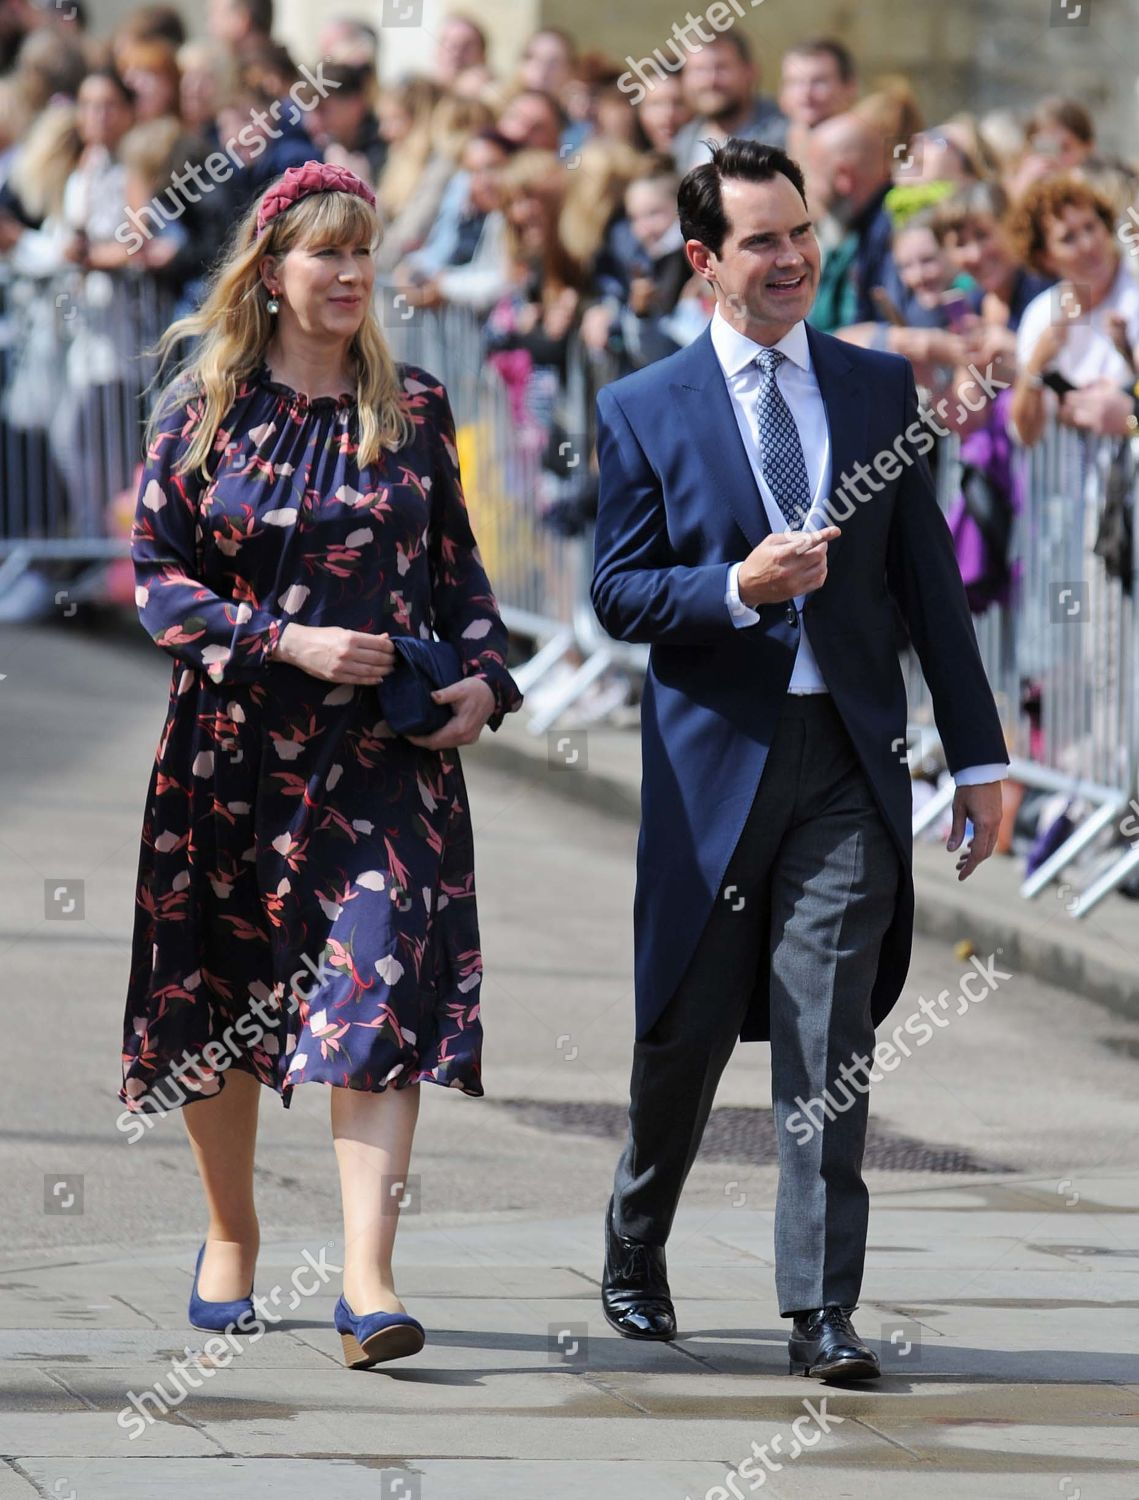 Karoline Copping Jimmy Carr Editorial Stock Photo Stock Image Shutterstock No need to register, buy now! 2